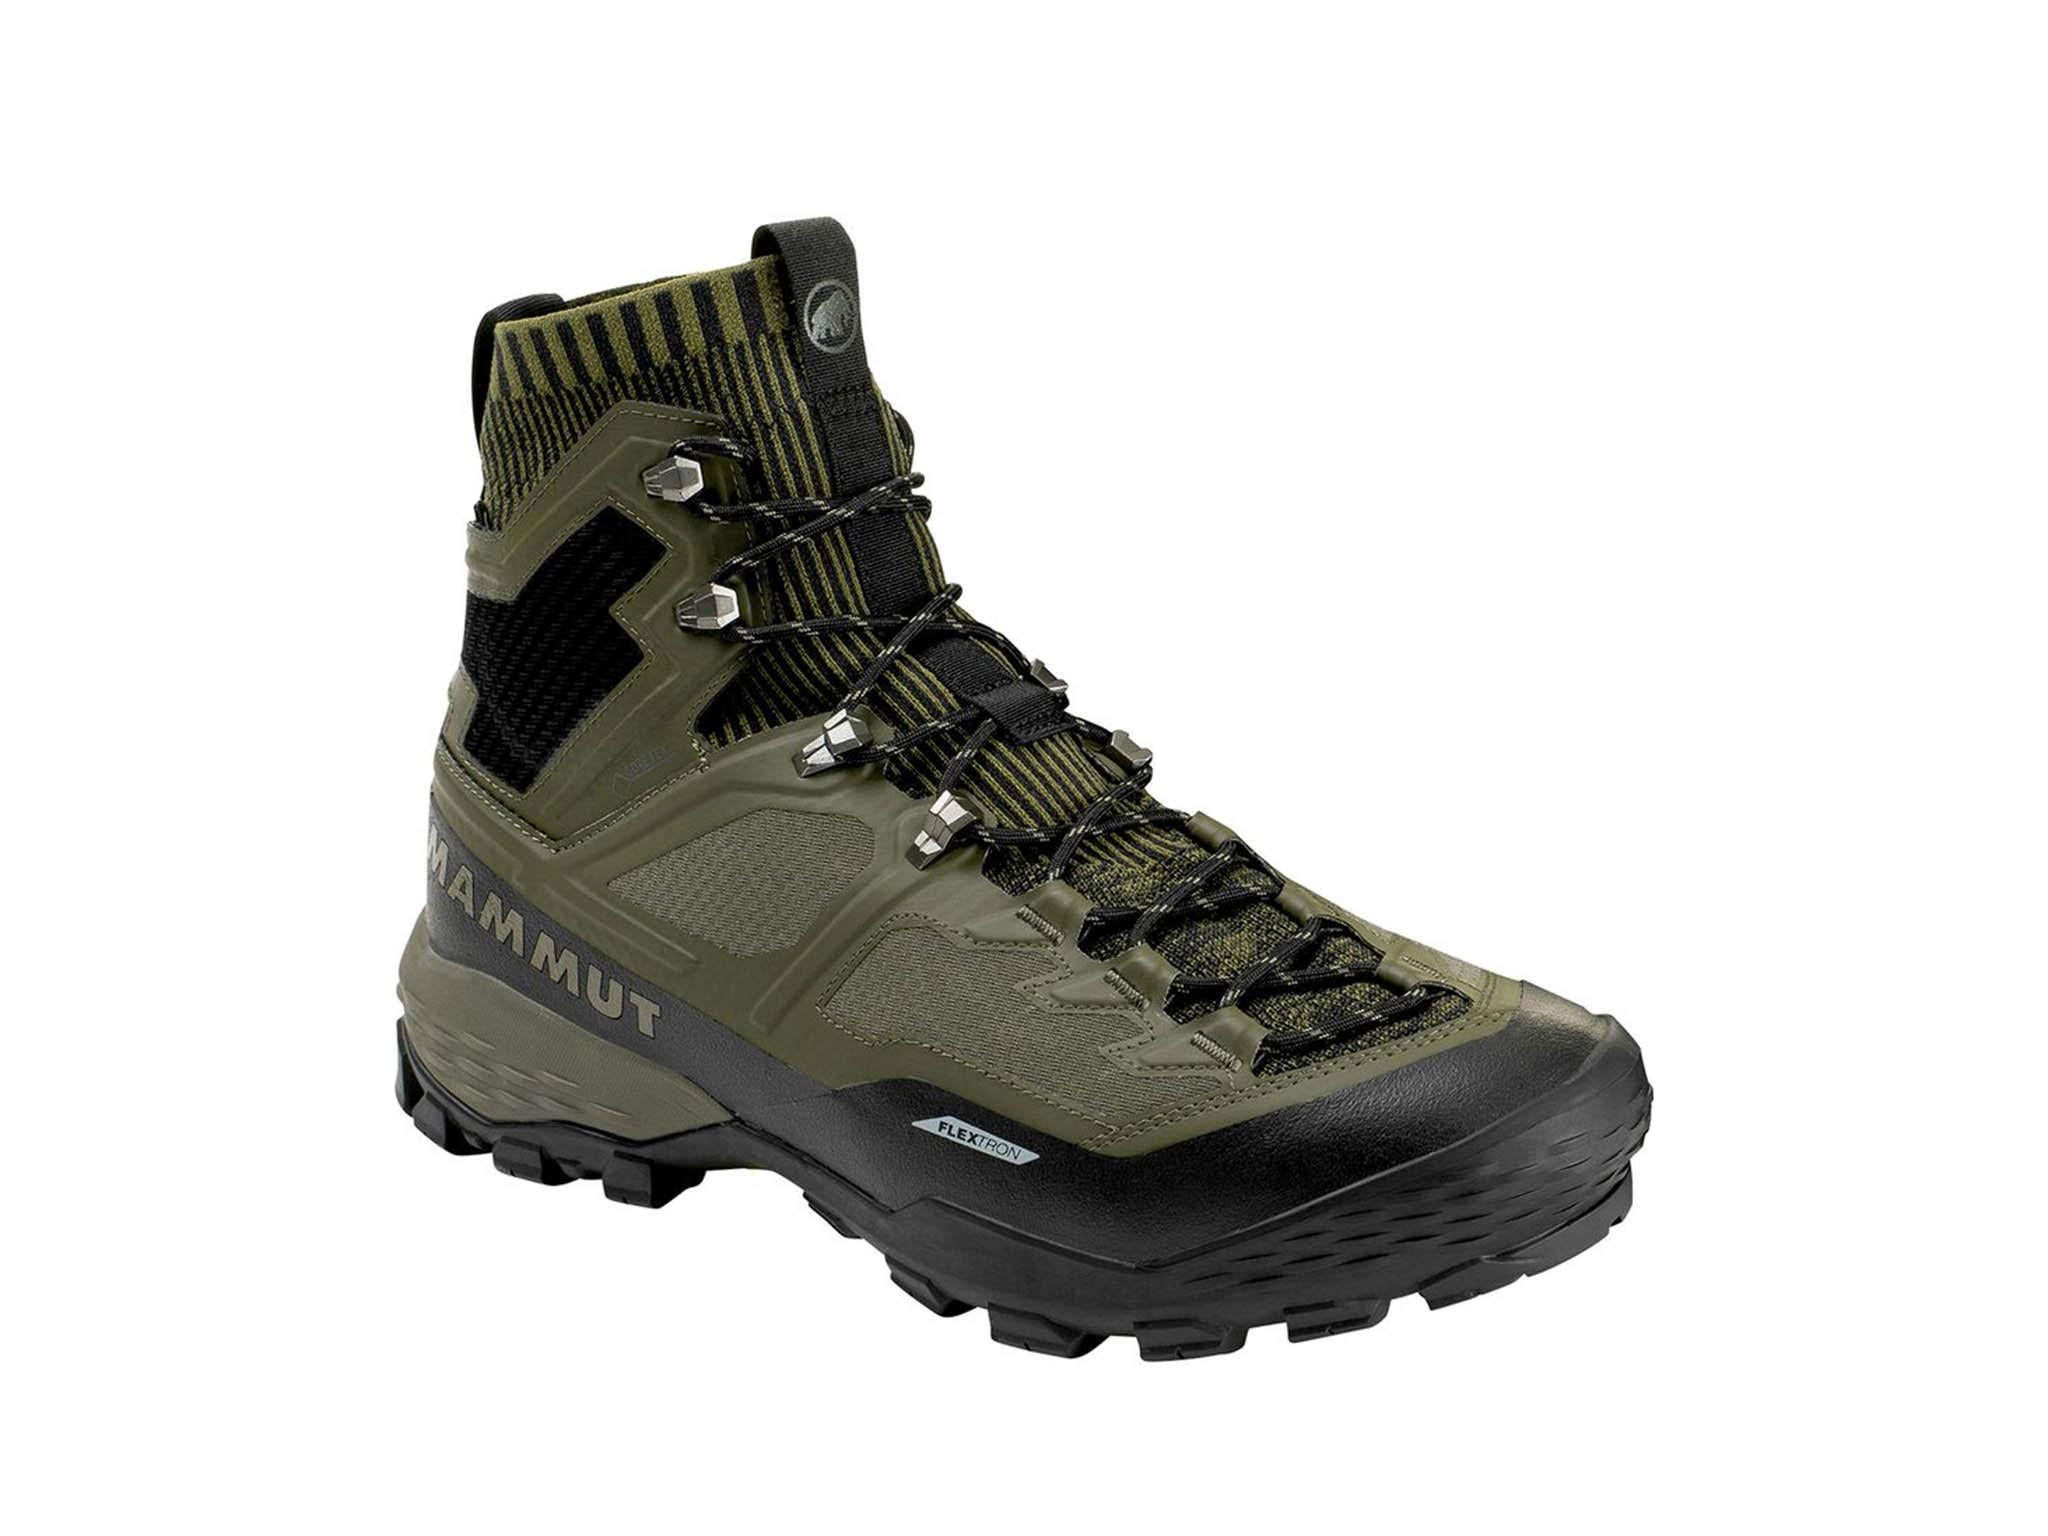 f13debf679 Best men's hiking boots and shoes